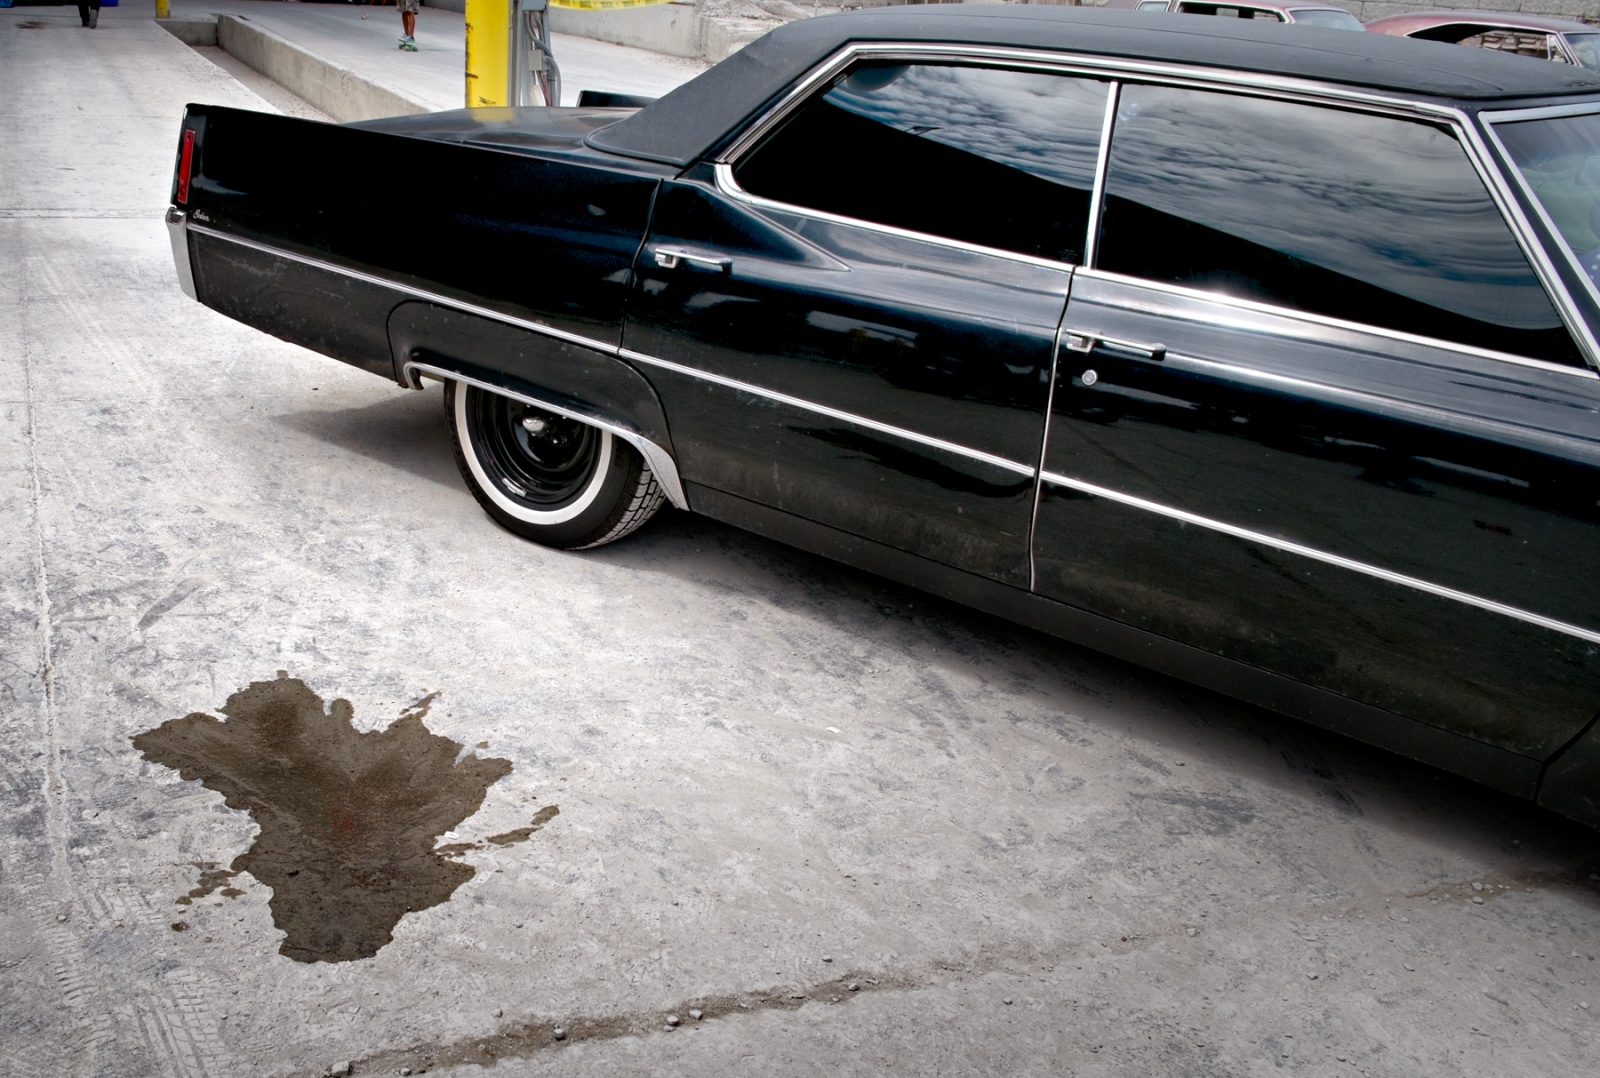 Art and Documentary Photography - Loading LowRider2015-172-Edit.jpg